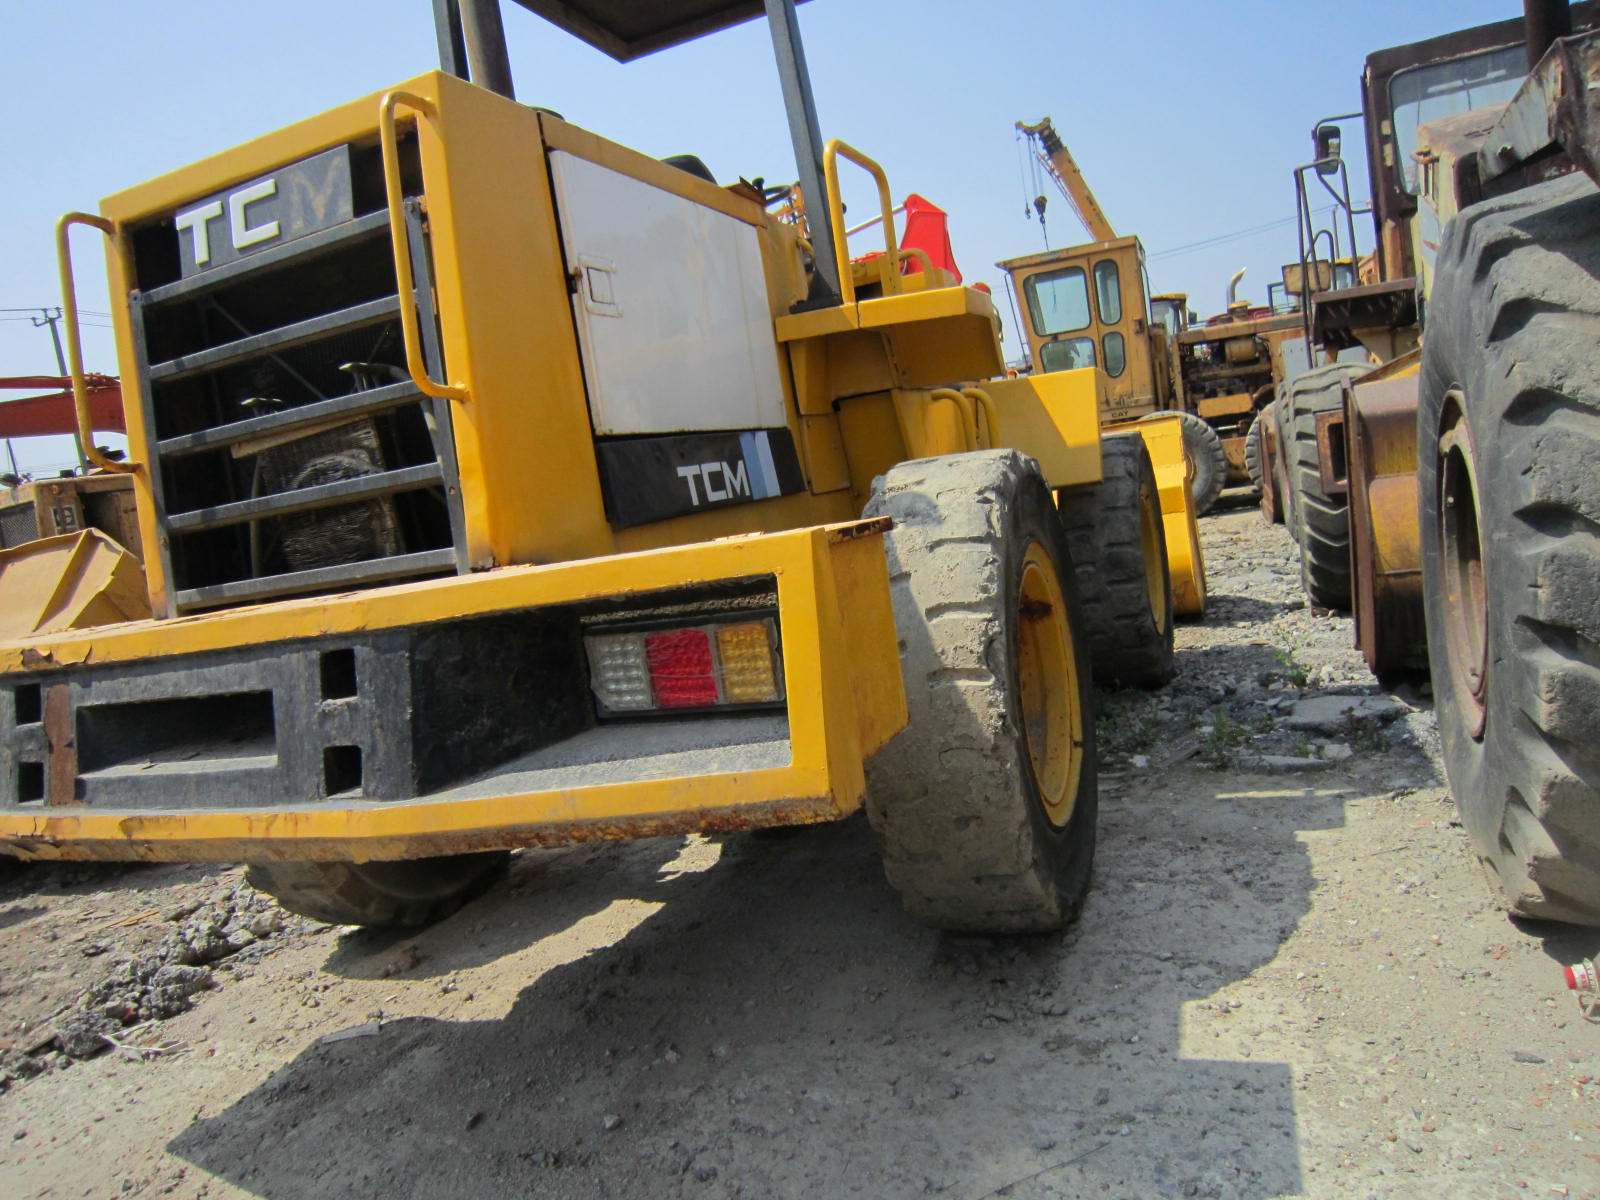 Used TCM 830 Wheel Loader in Good Condition for Sale/ Cheap Price TCM 830 Used Wheel Loader